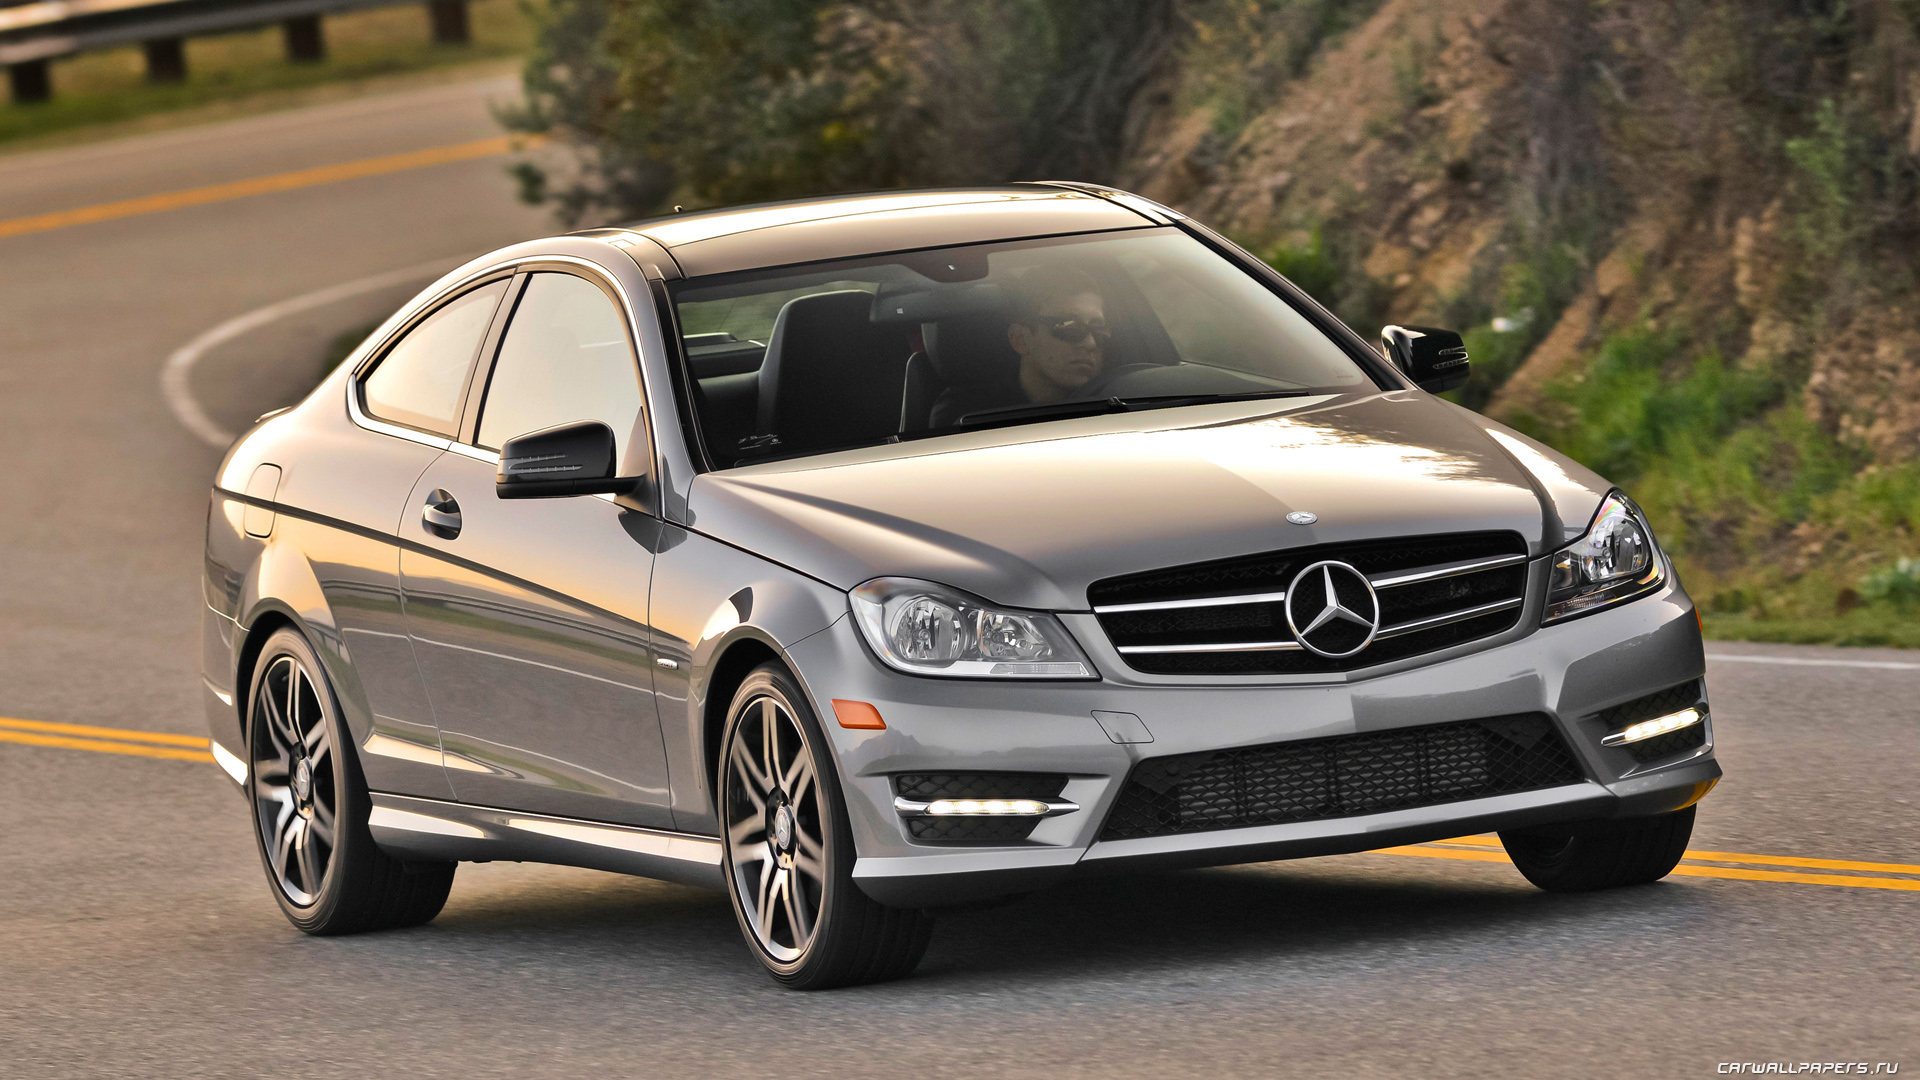 Mercedes benz usa 102 high resolution car wallpaper for Mercedes benz ua